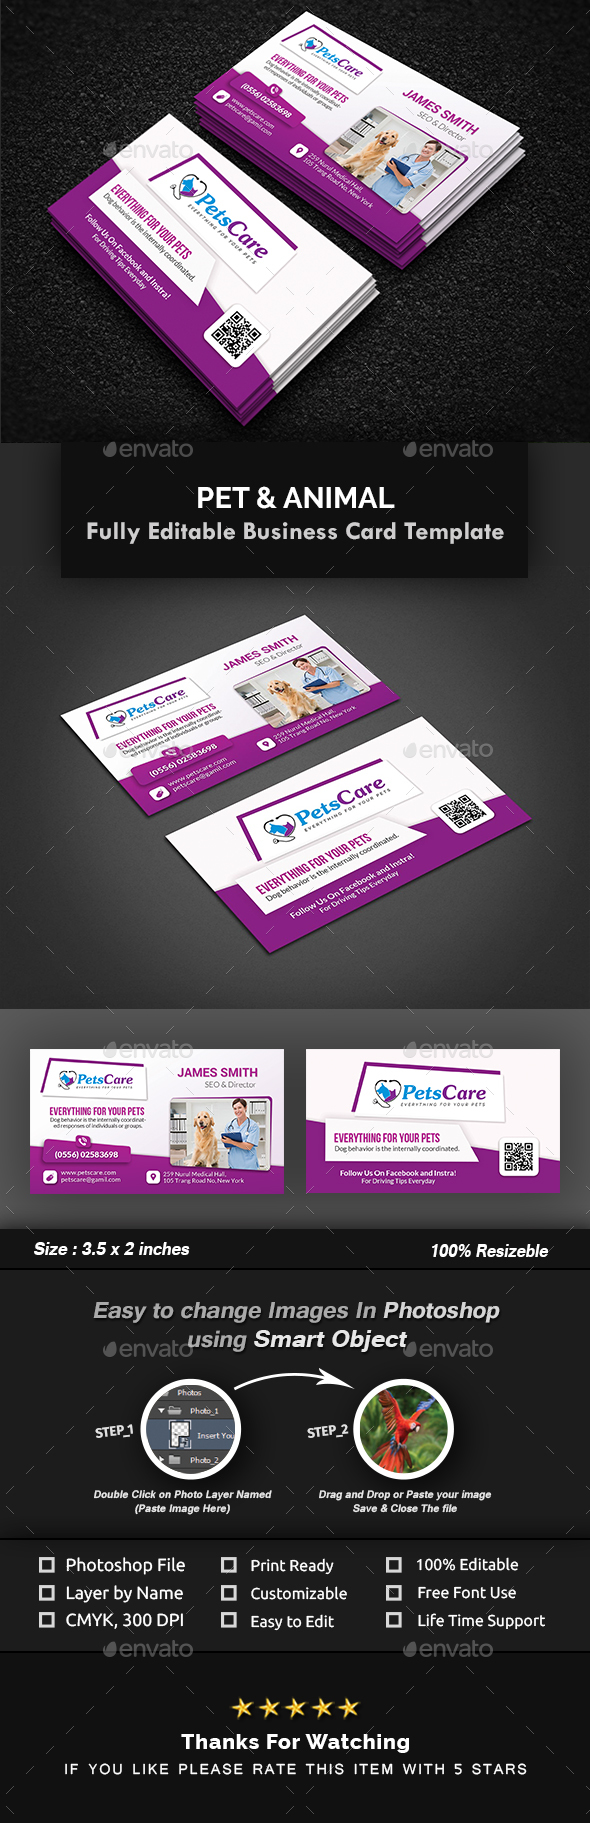 Pet Care Business Card Template by Creative-Touch | GraphicRiver